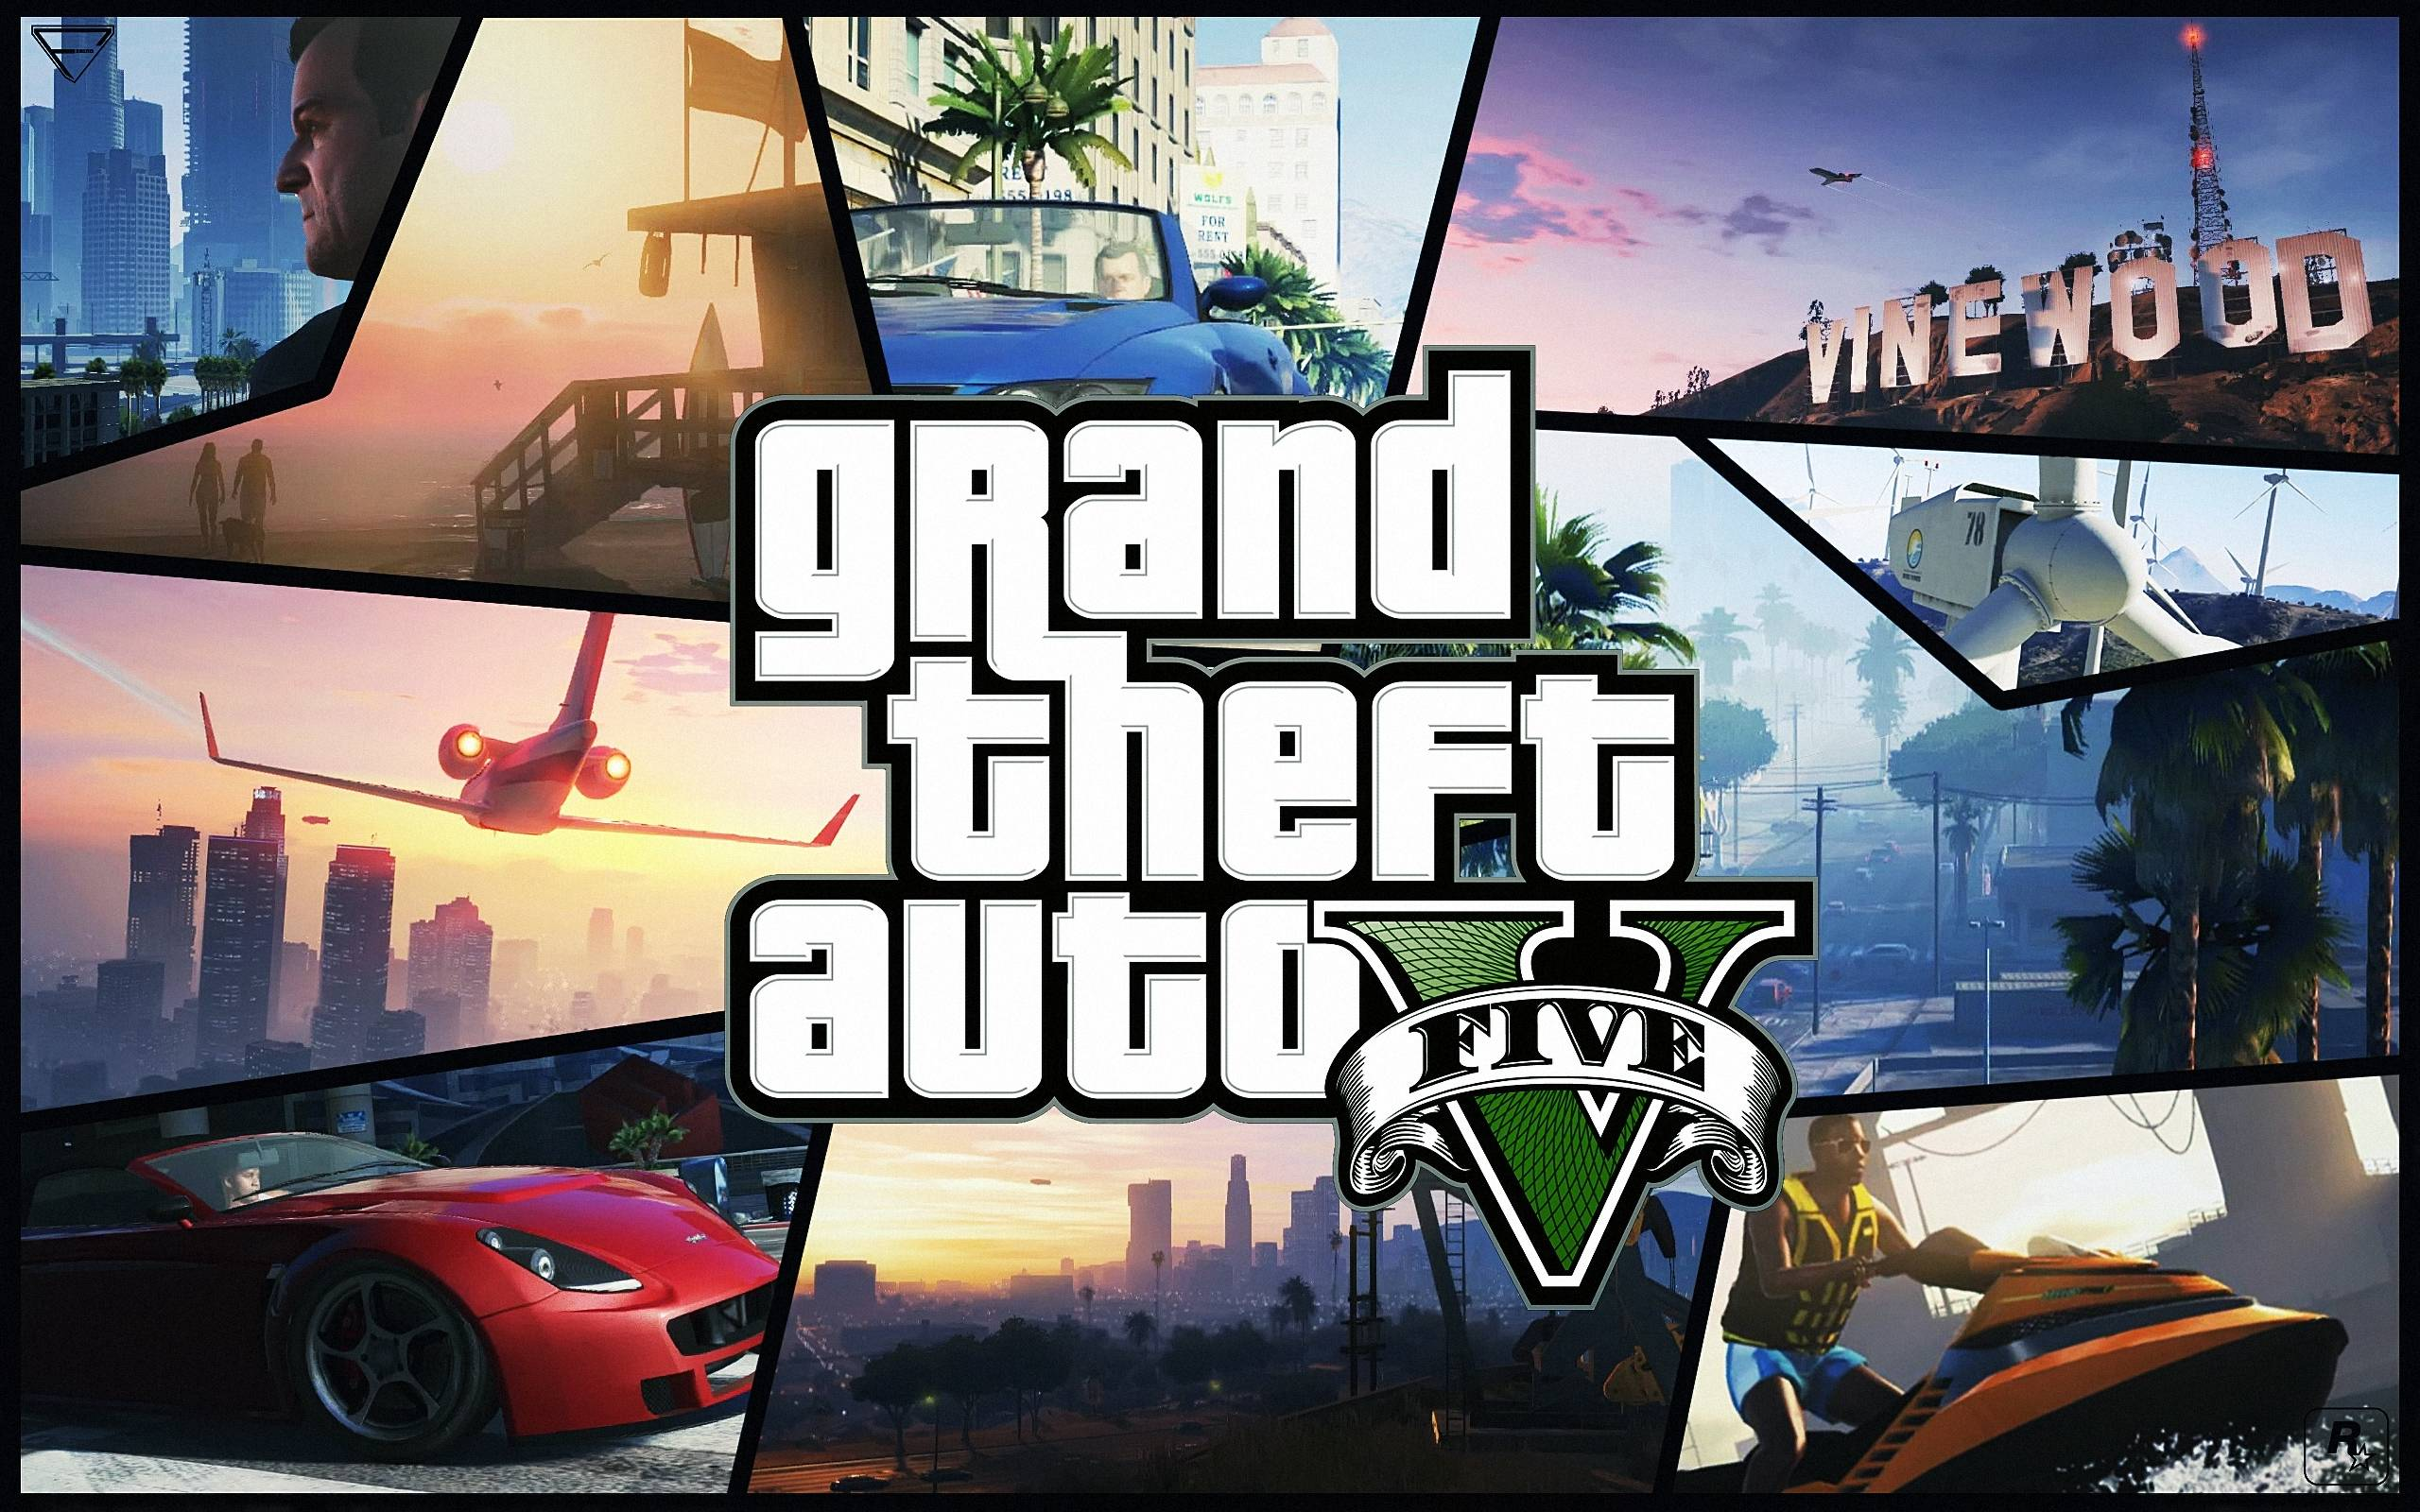 Trevor Grand Theft Auto V wallpaper Game wallpapers